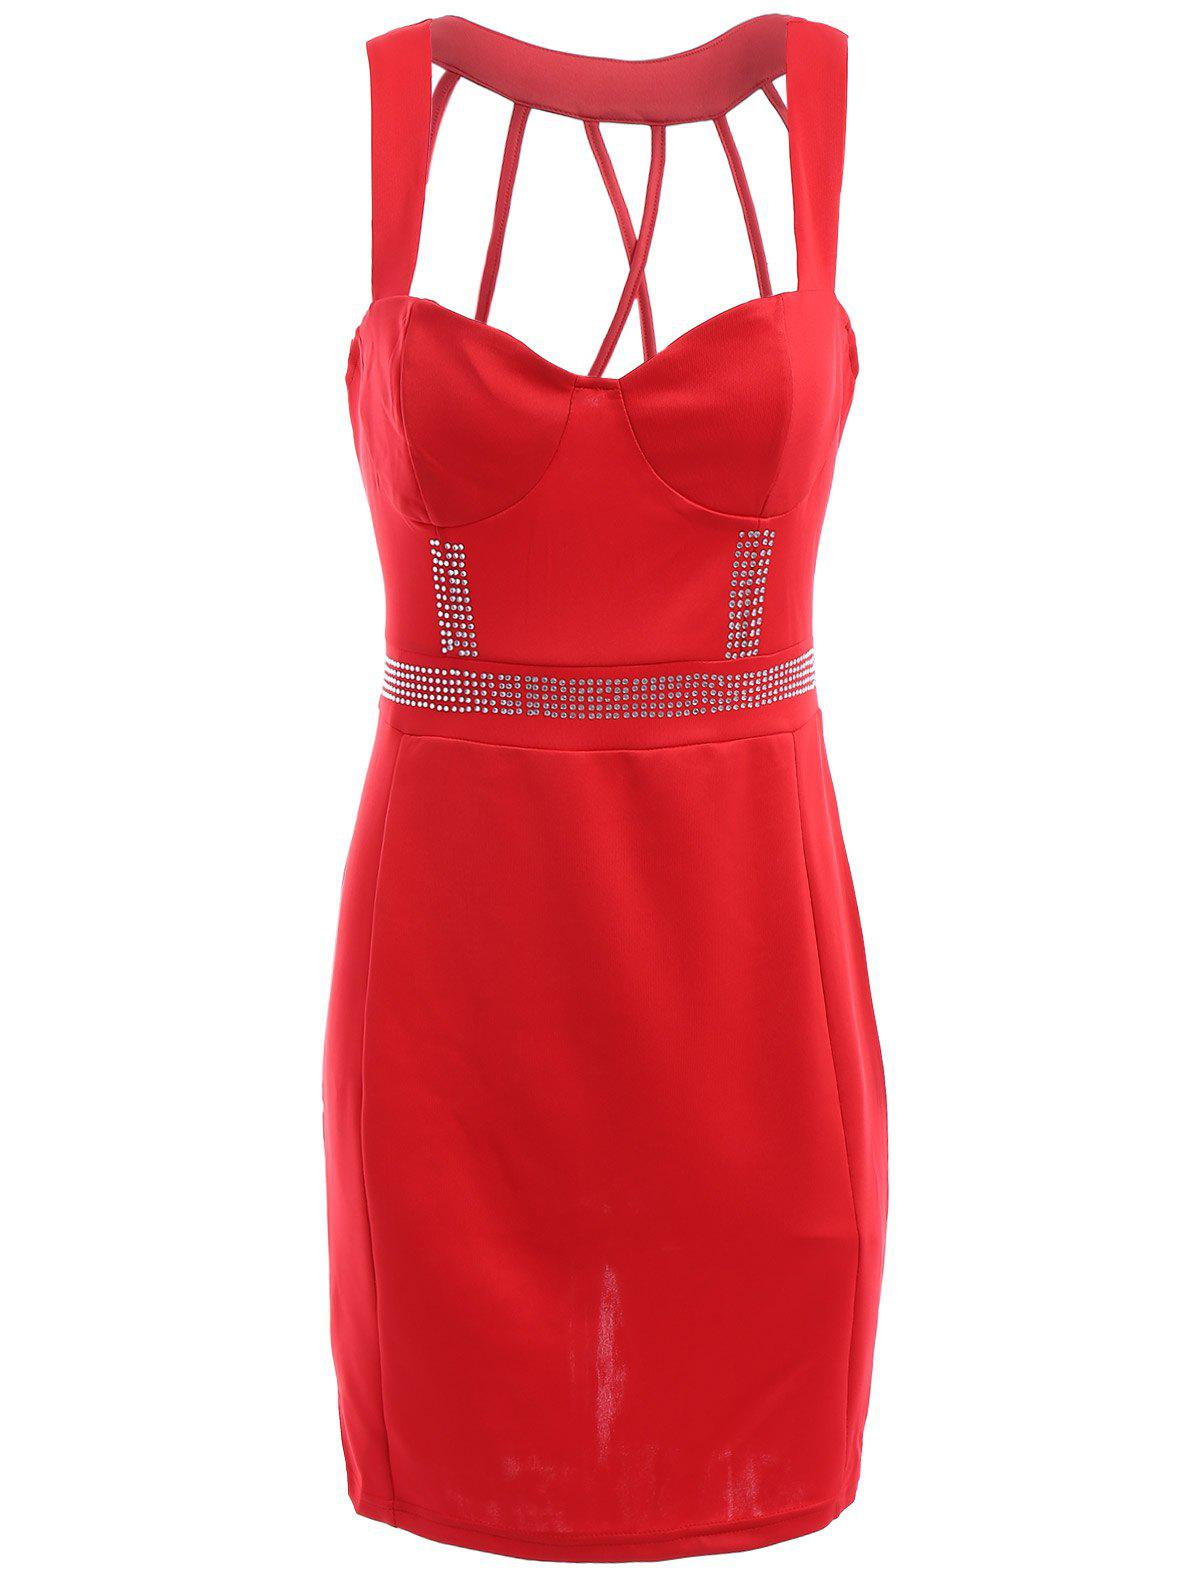 Charming Women's Sweetheart Neckline Backless Bodycon Dress - RED M